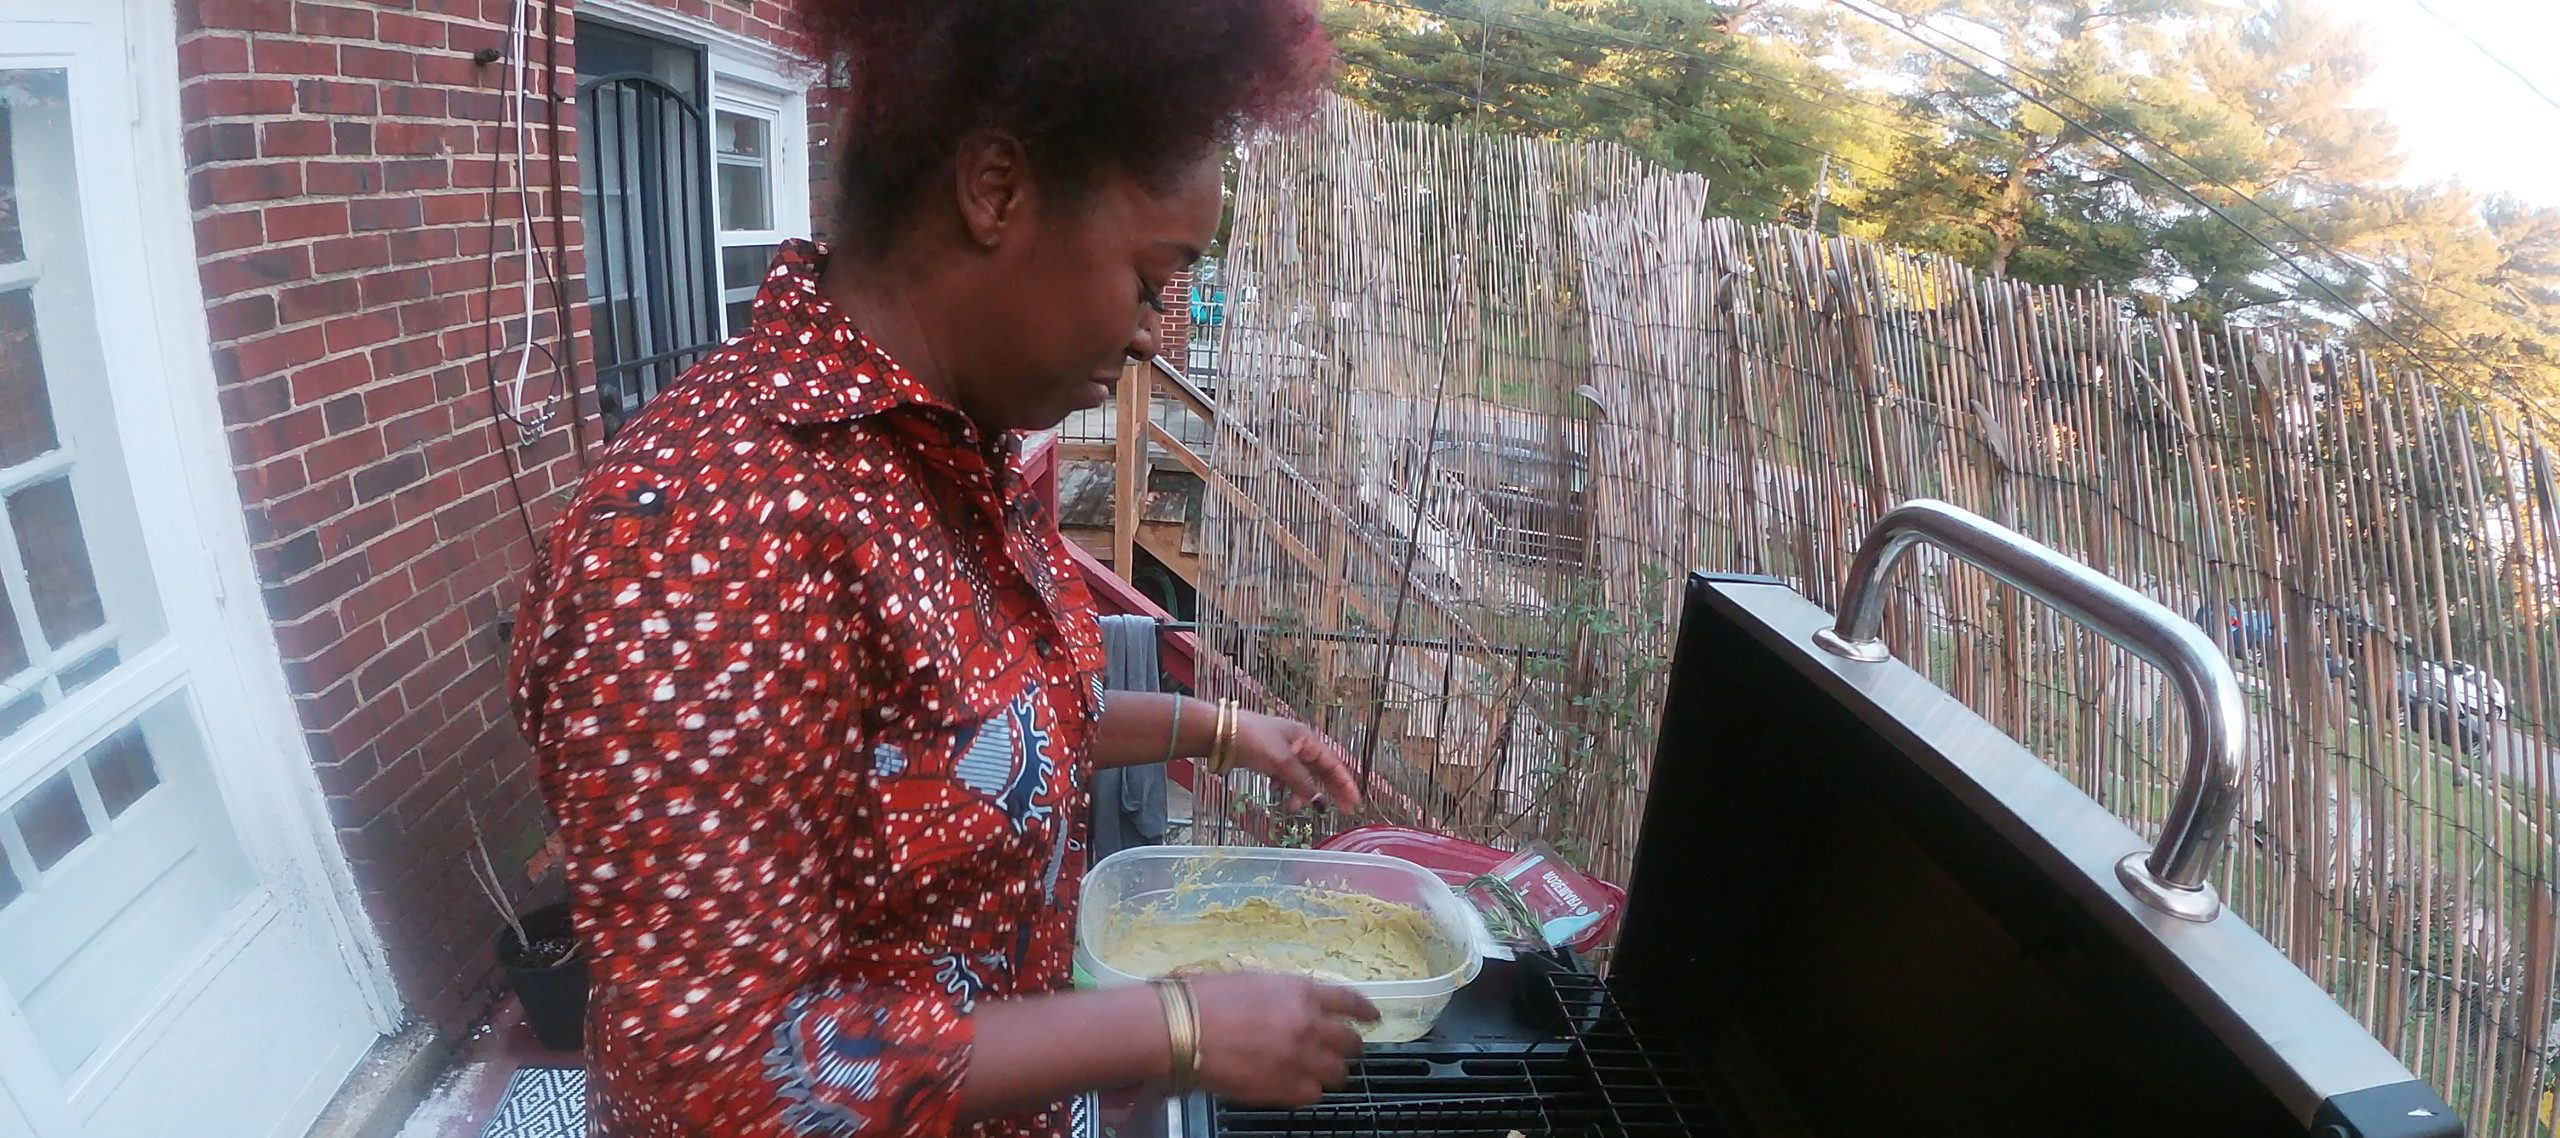 A dark-skinned woman stands on an outdoor balcony, grilling four whole fish on a gas grill. She holds a Tupperware of marinade. The photo is taken with a GoPro, creating a fish eye angle of the scene.